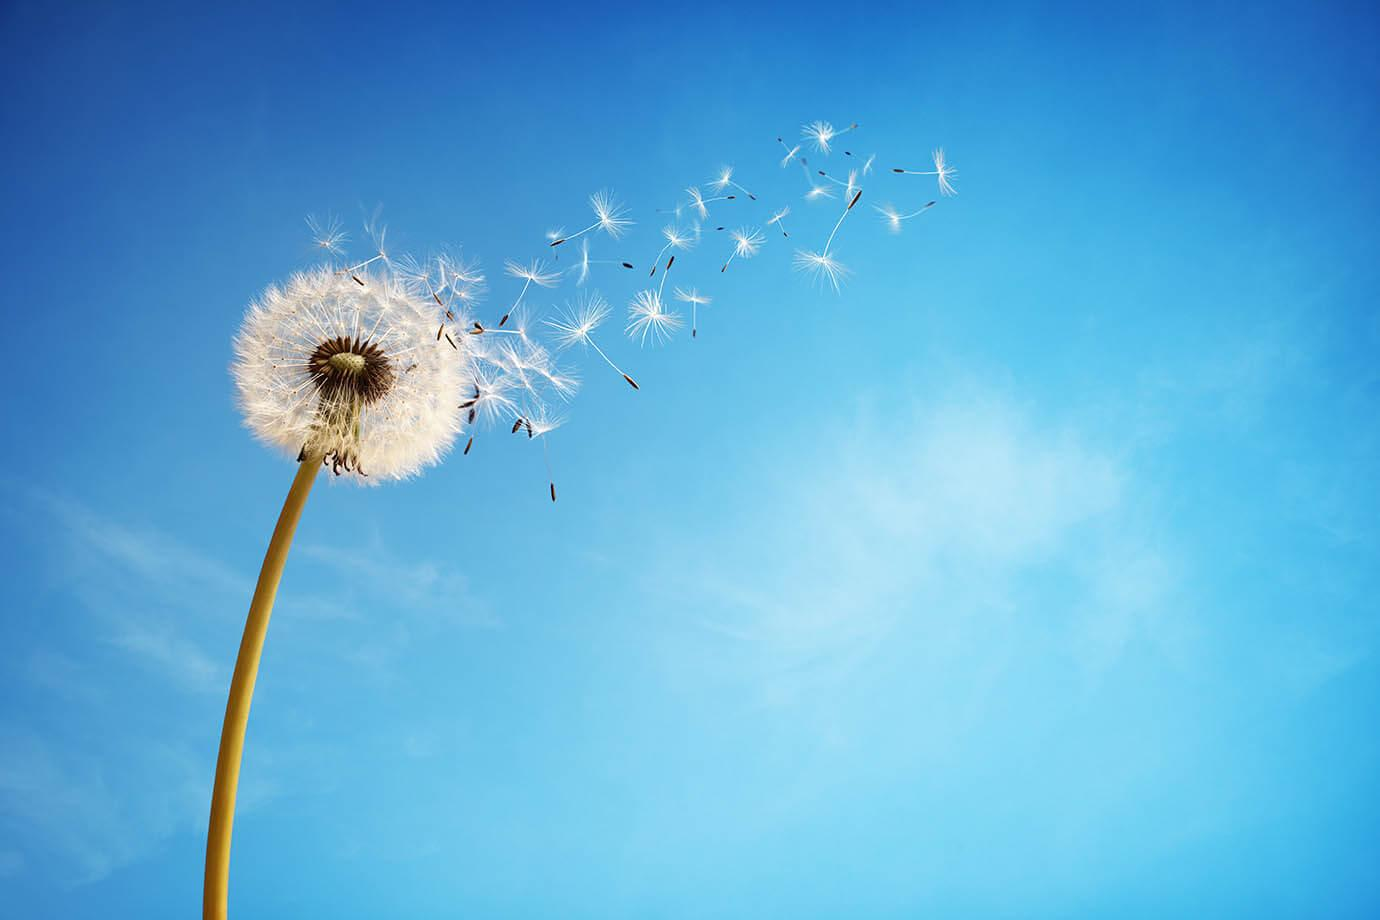 A dandelion with seeds being blown off in the wind